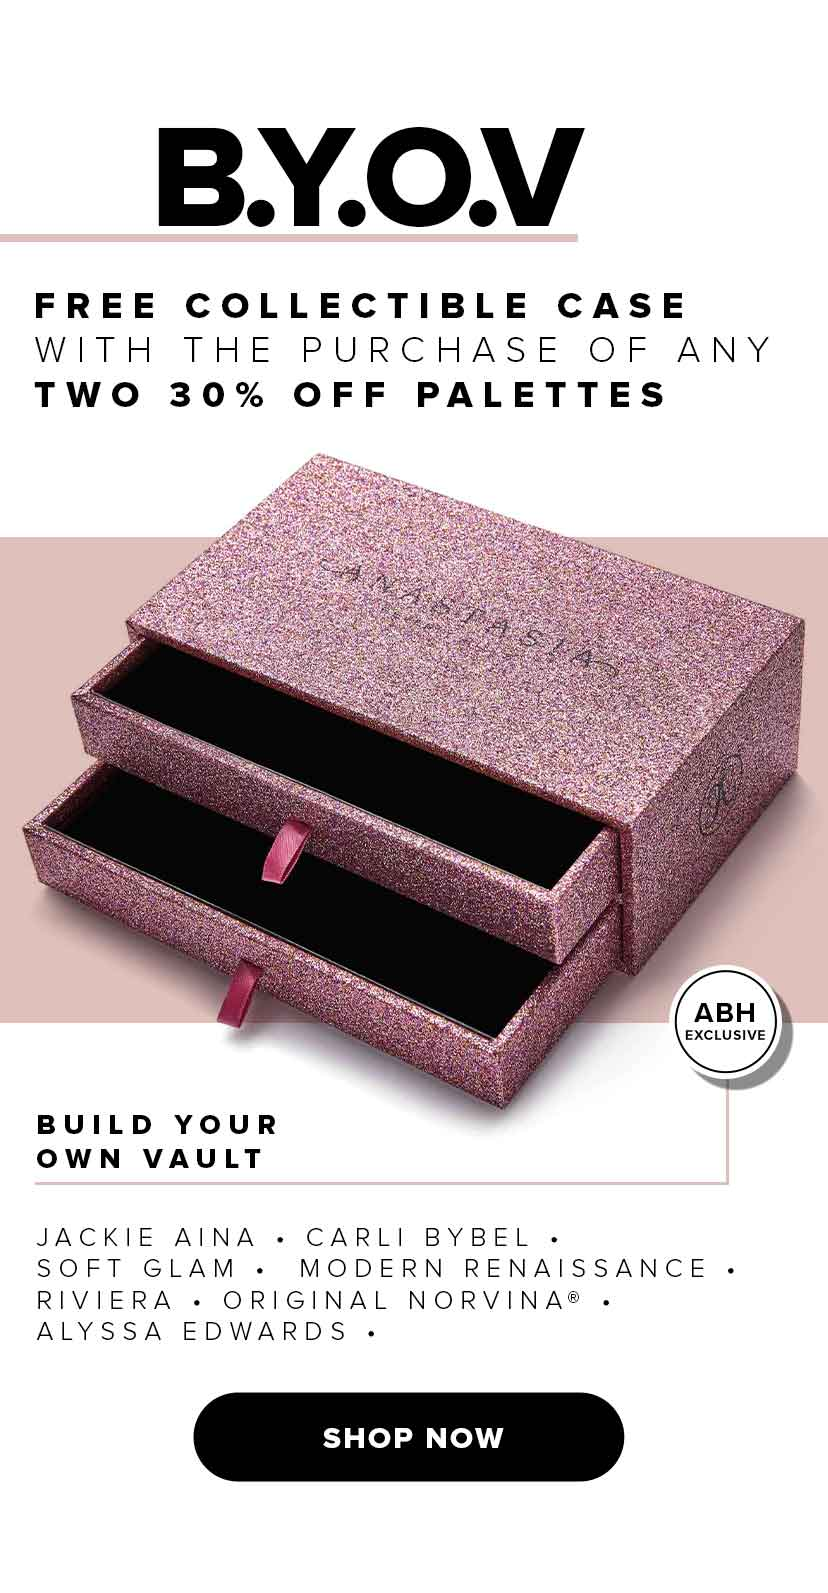 Free Collectable Case with the purchase of any 2 30% off palettes